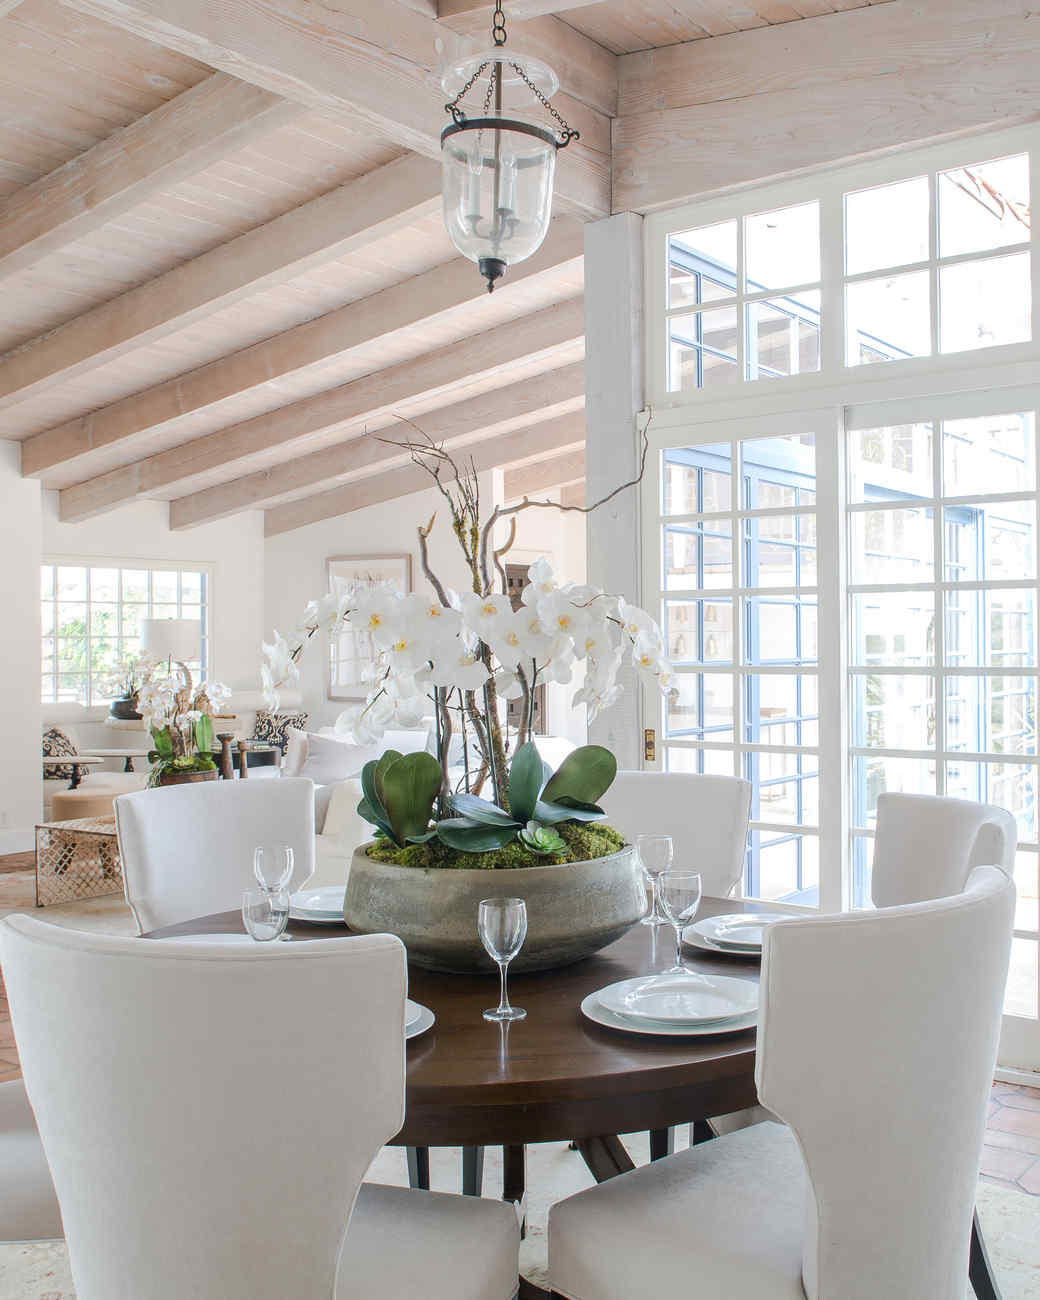 Dining Room Ideas: Feast Your Eyes: Gorgeous Dining Room Decorating Ideas